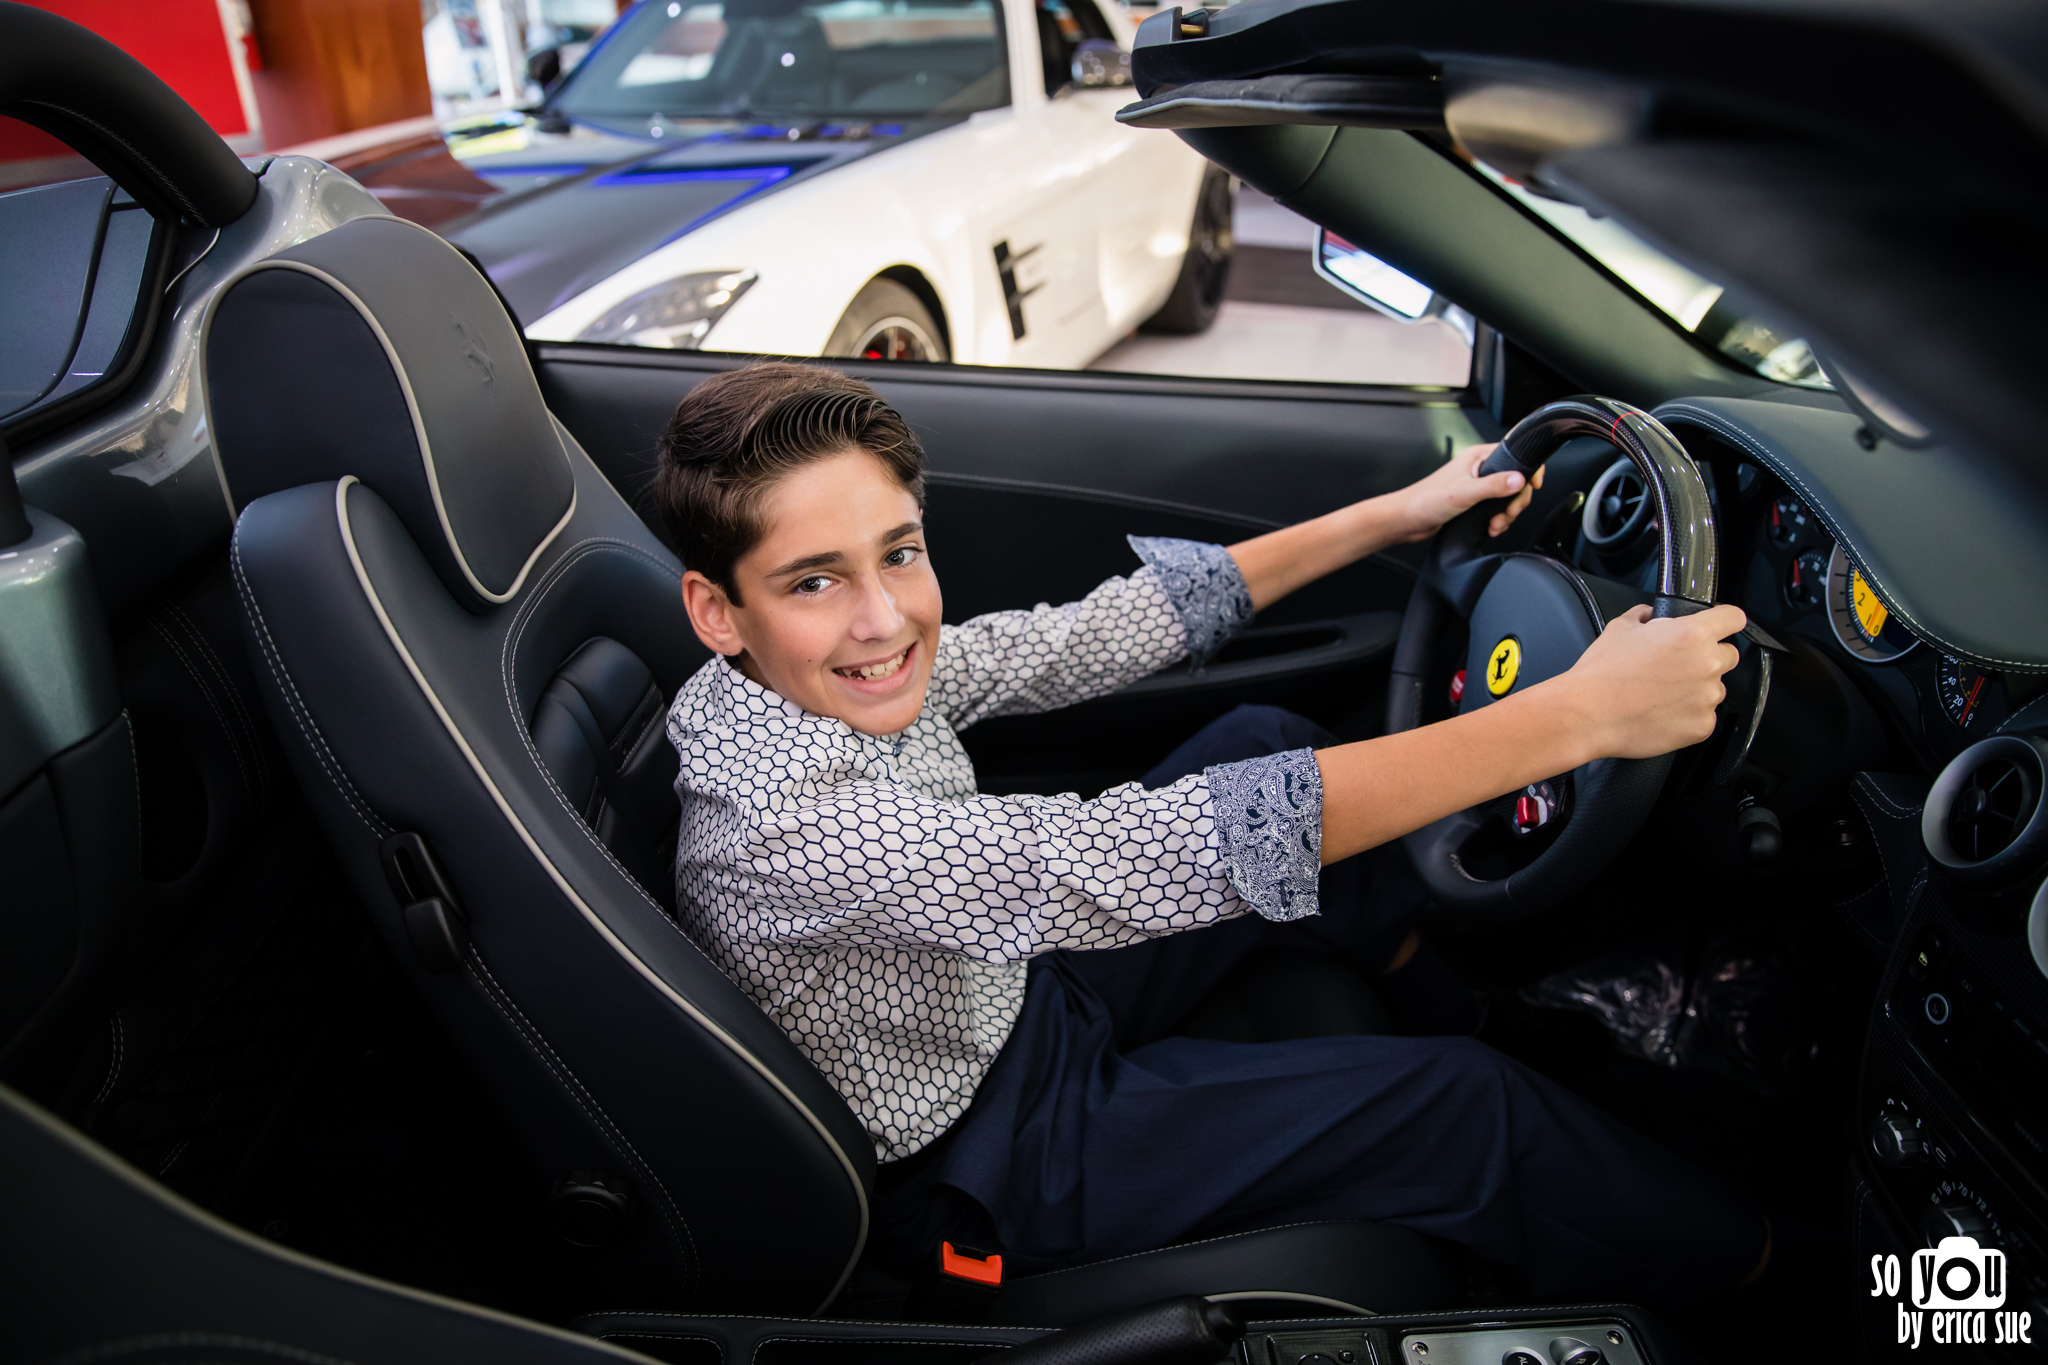 so-you-by-erica-sue-mitzvah-photographer-collection-luxury-car-ft-lauderdale-5078.jpg